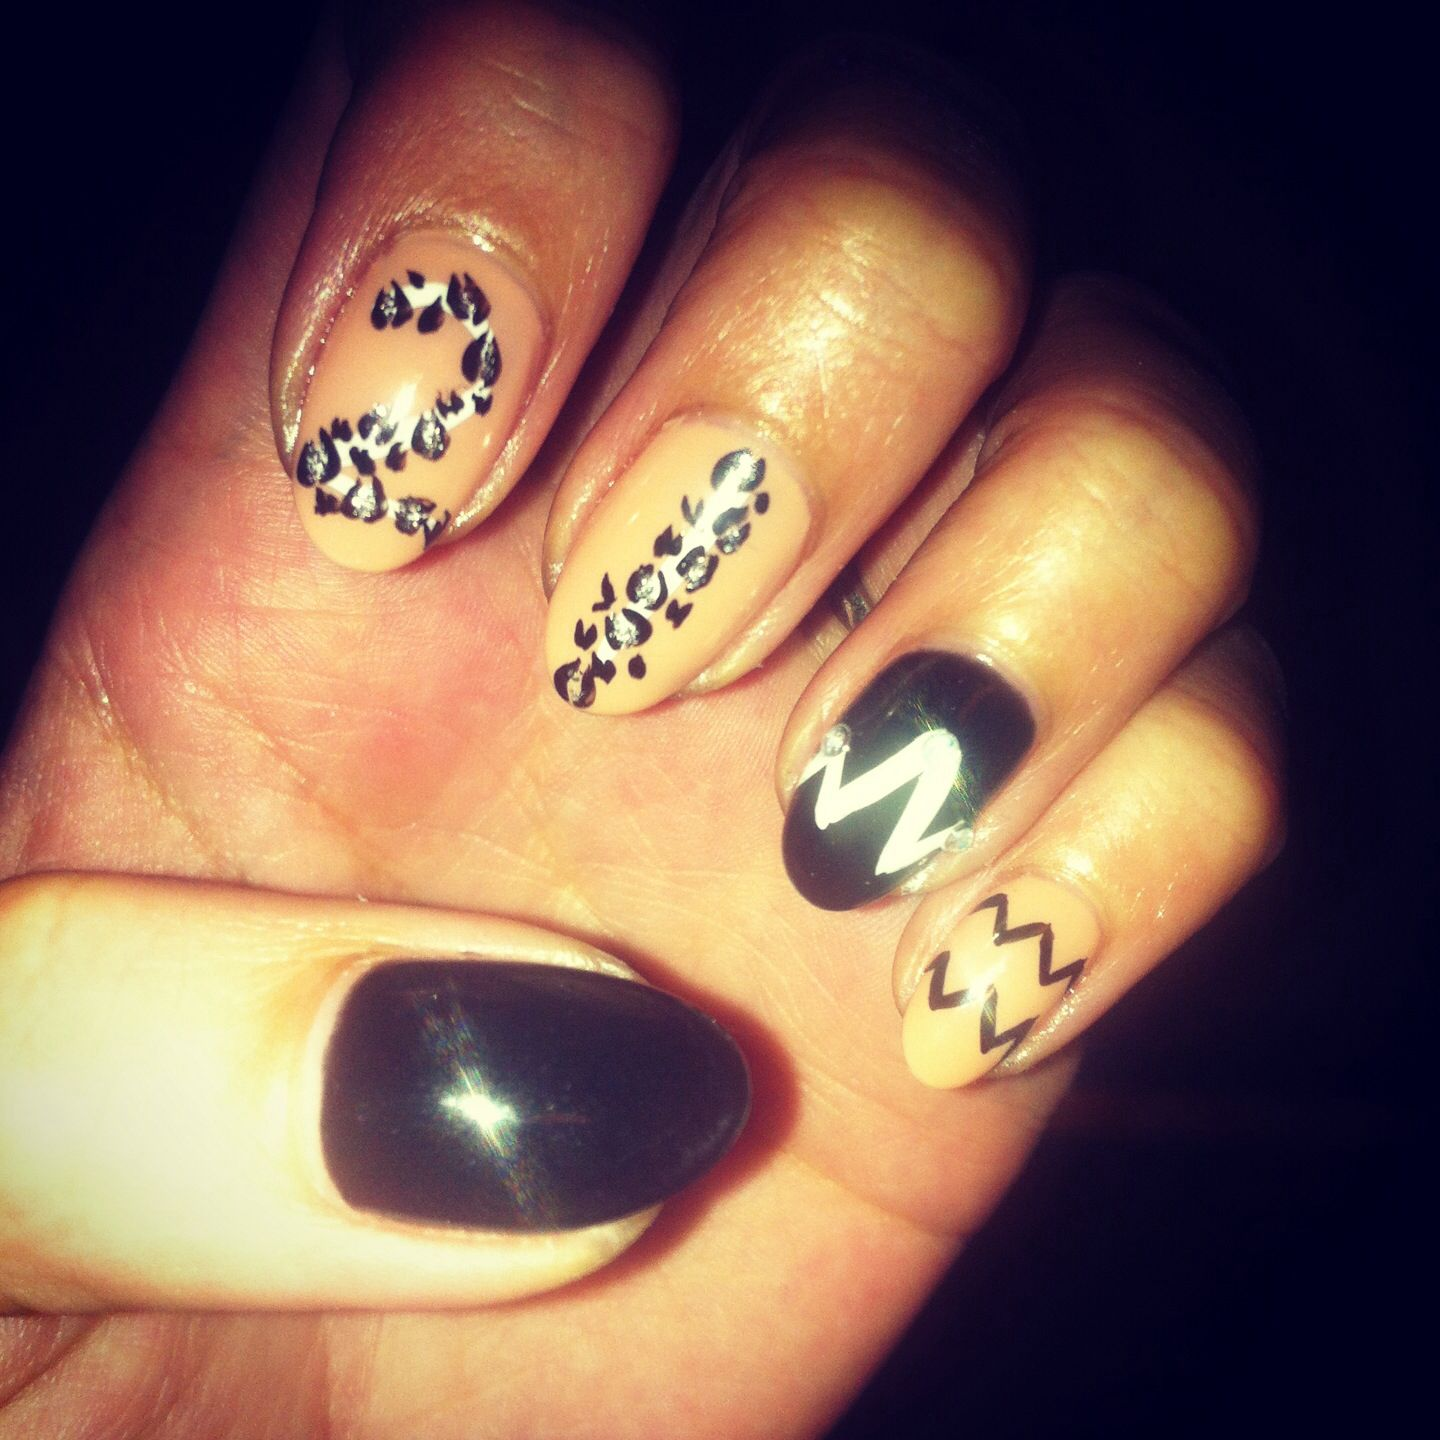 My 21st birthday nail designs. Loved my cheetah print with my number ...